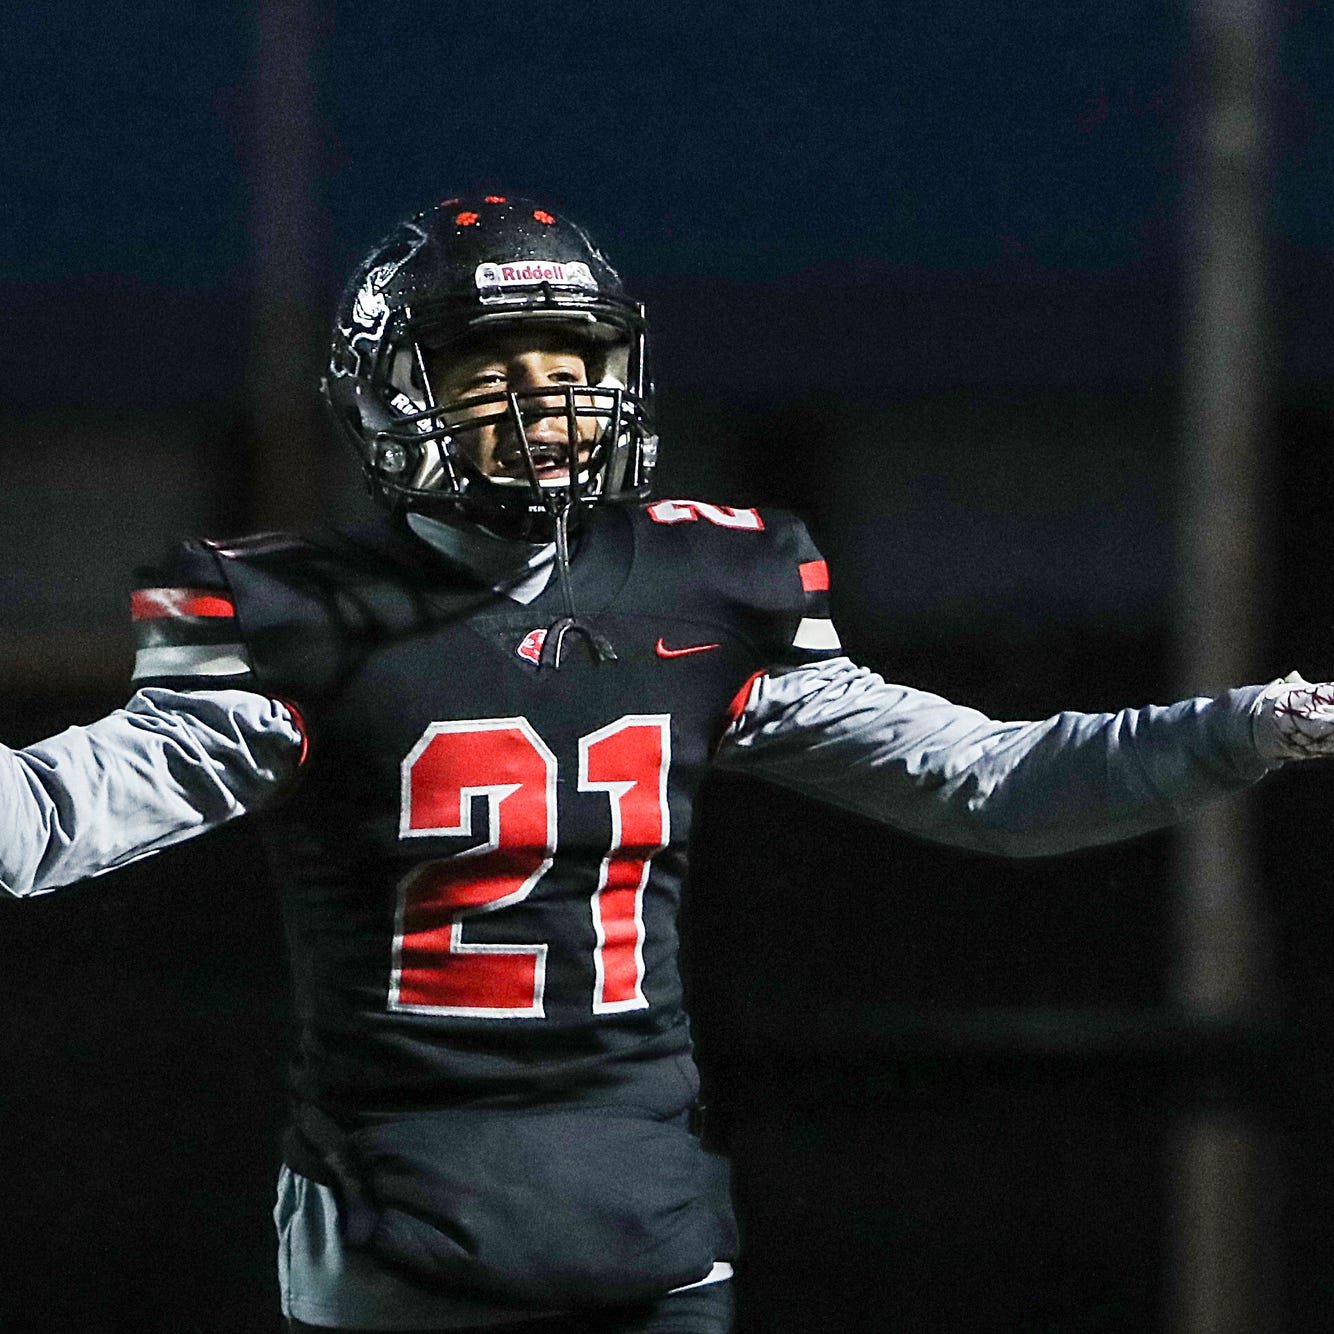 North Central Panthers cornerback Theran Johnson (21) celebrates after he intercepted a pass intended for Ben Davis Giants wide receiver Dominic Day (8) in the first half of the game at North Central High School in Indianapolis, Oct. 12, 2018.